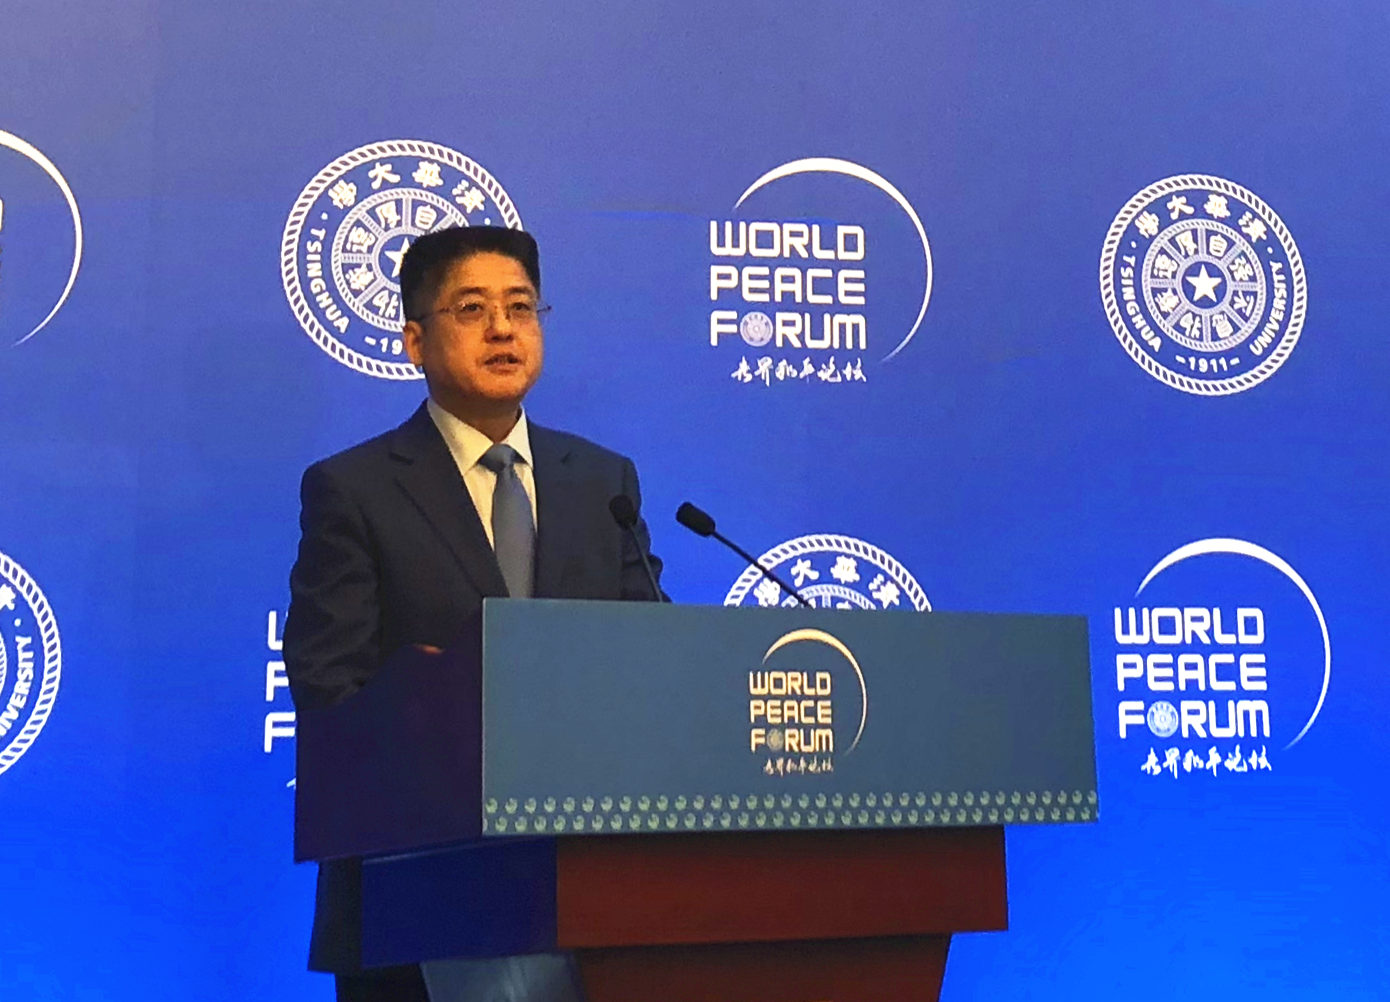 China will never build any wall or decouple from any other country: Le Yucheng